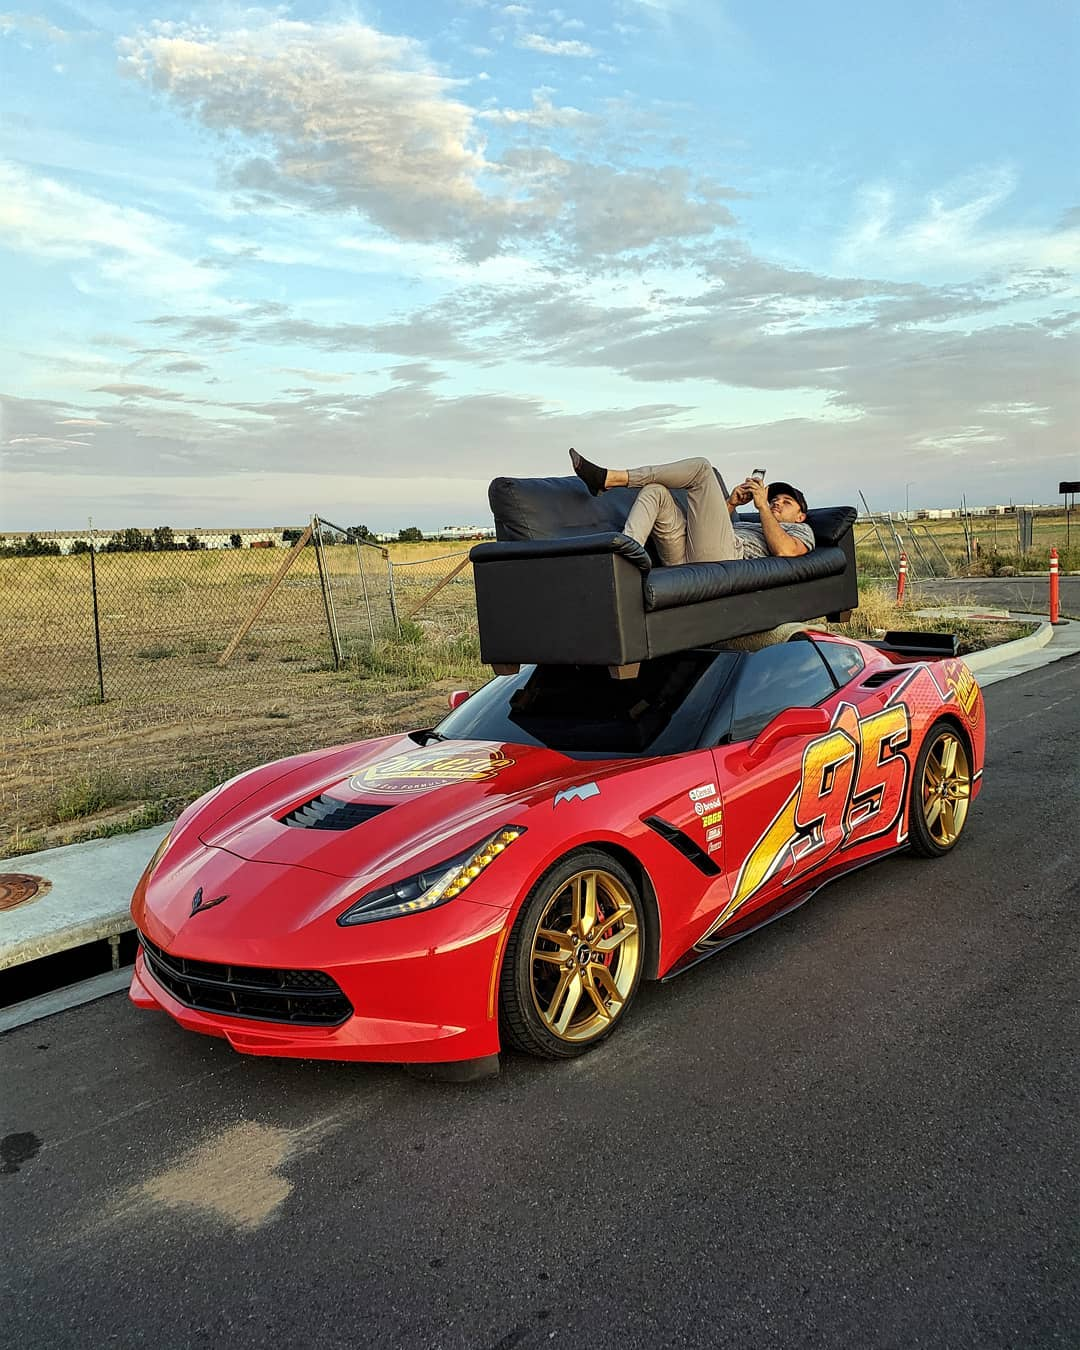 A video is going viral on Reddit featuring a Chevrolet C7 Corvette Stingray carrying a large sofa on its roof without any fastenings in view.